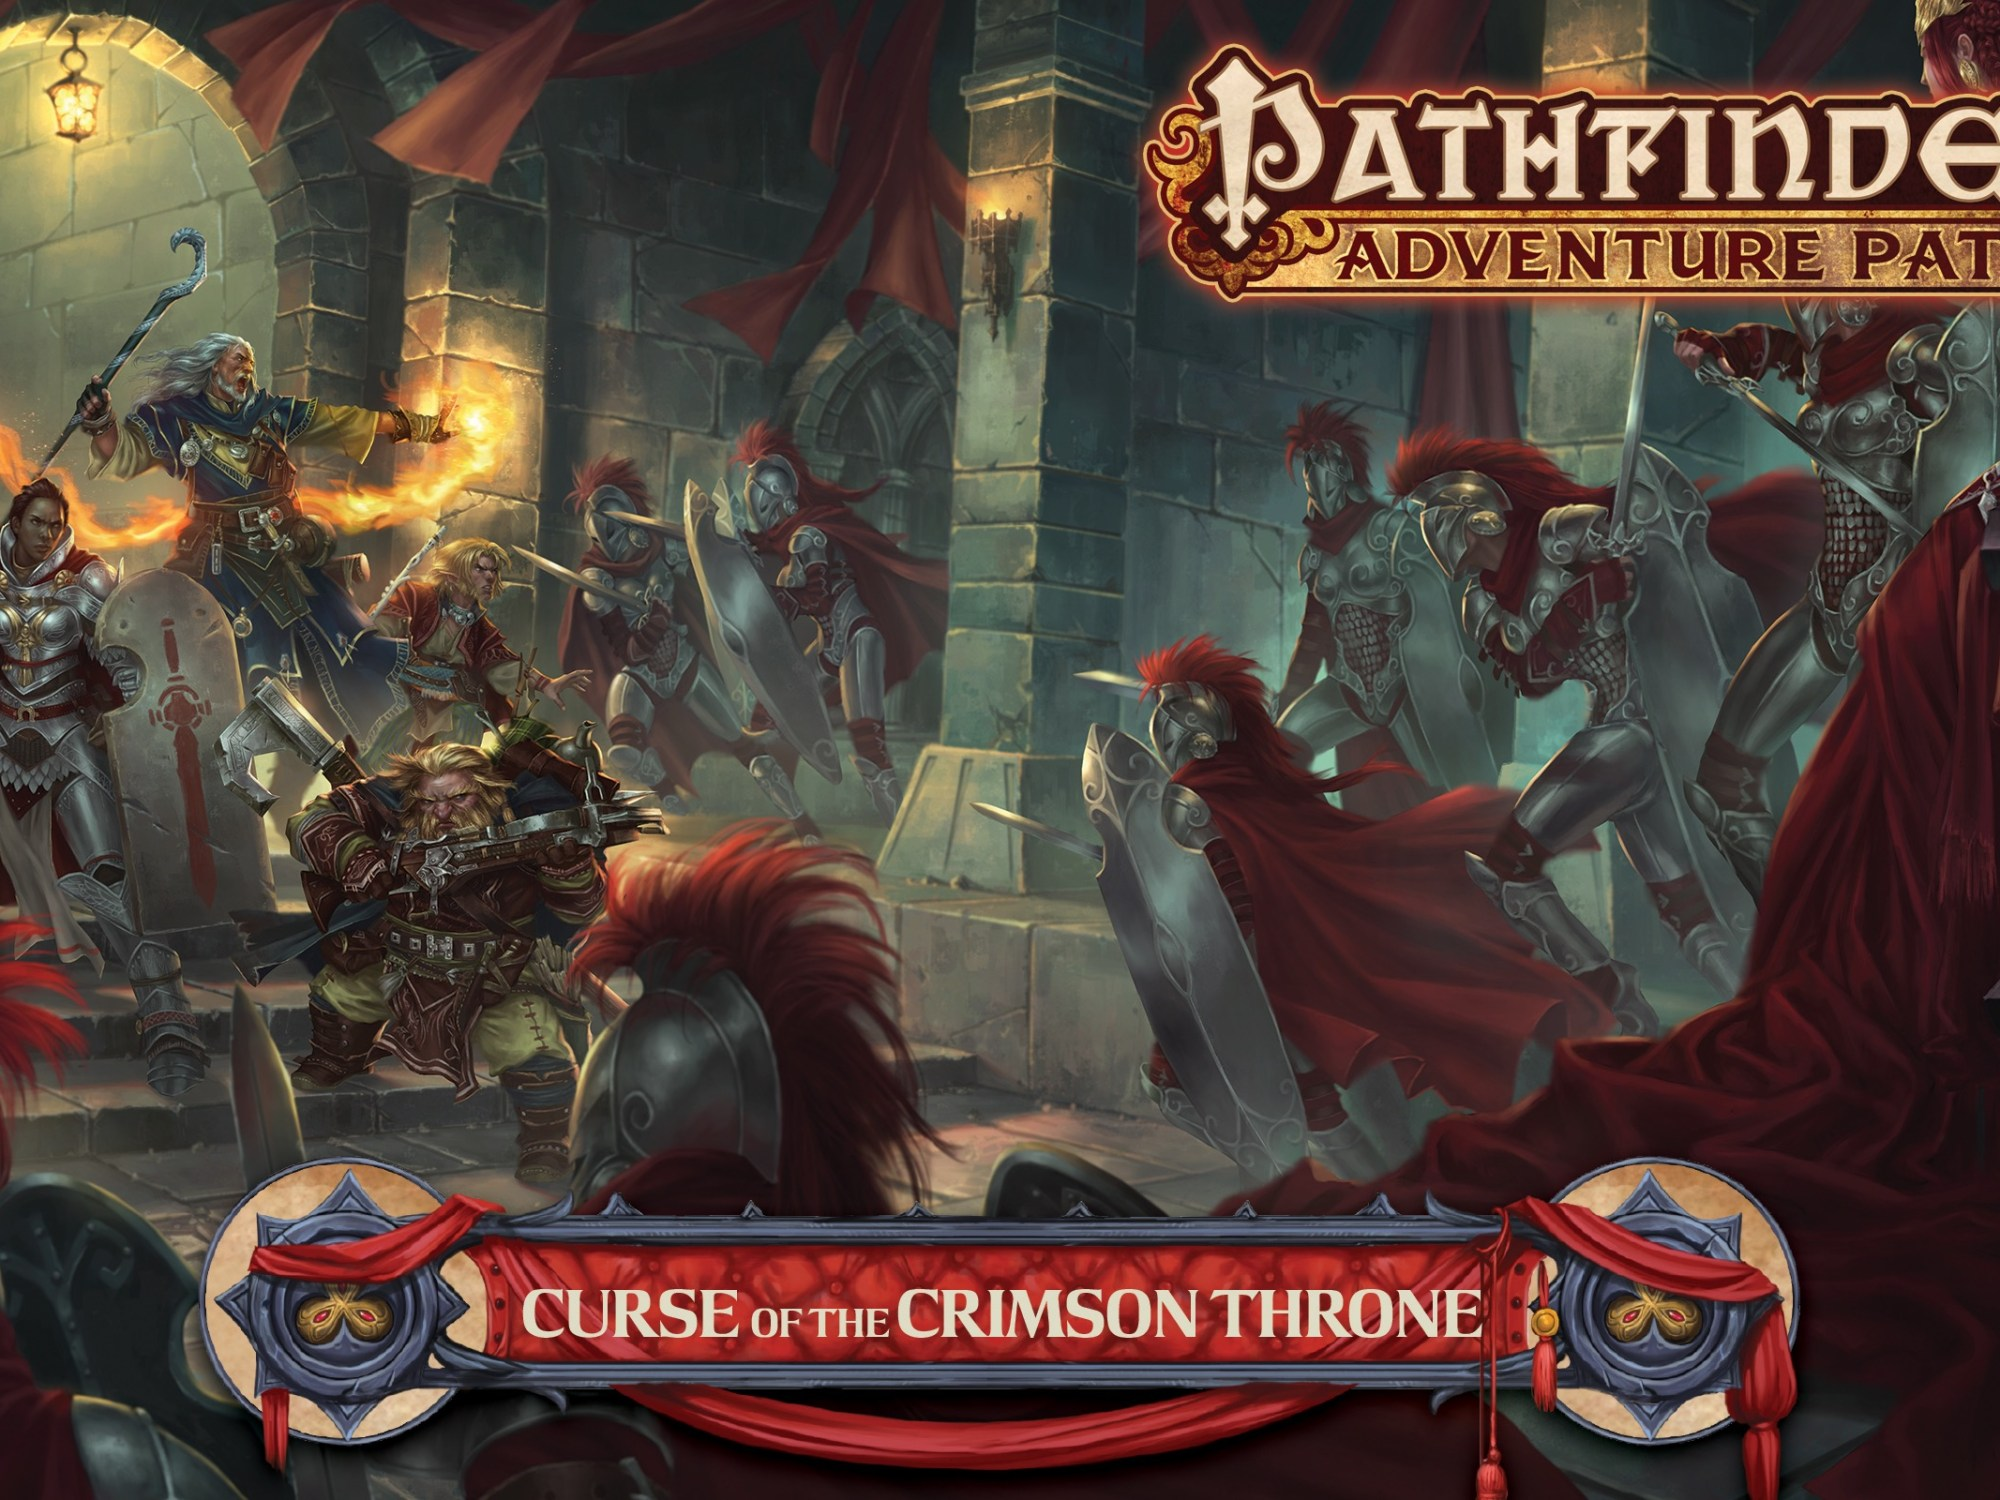 Review – Curse of the Crimson Throne (Pathfinder RPG) – Strange Assembly